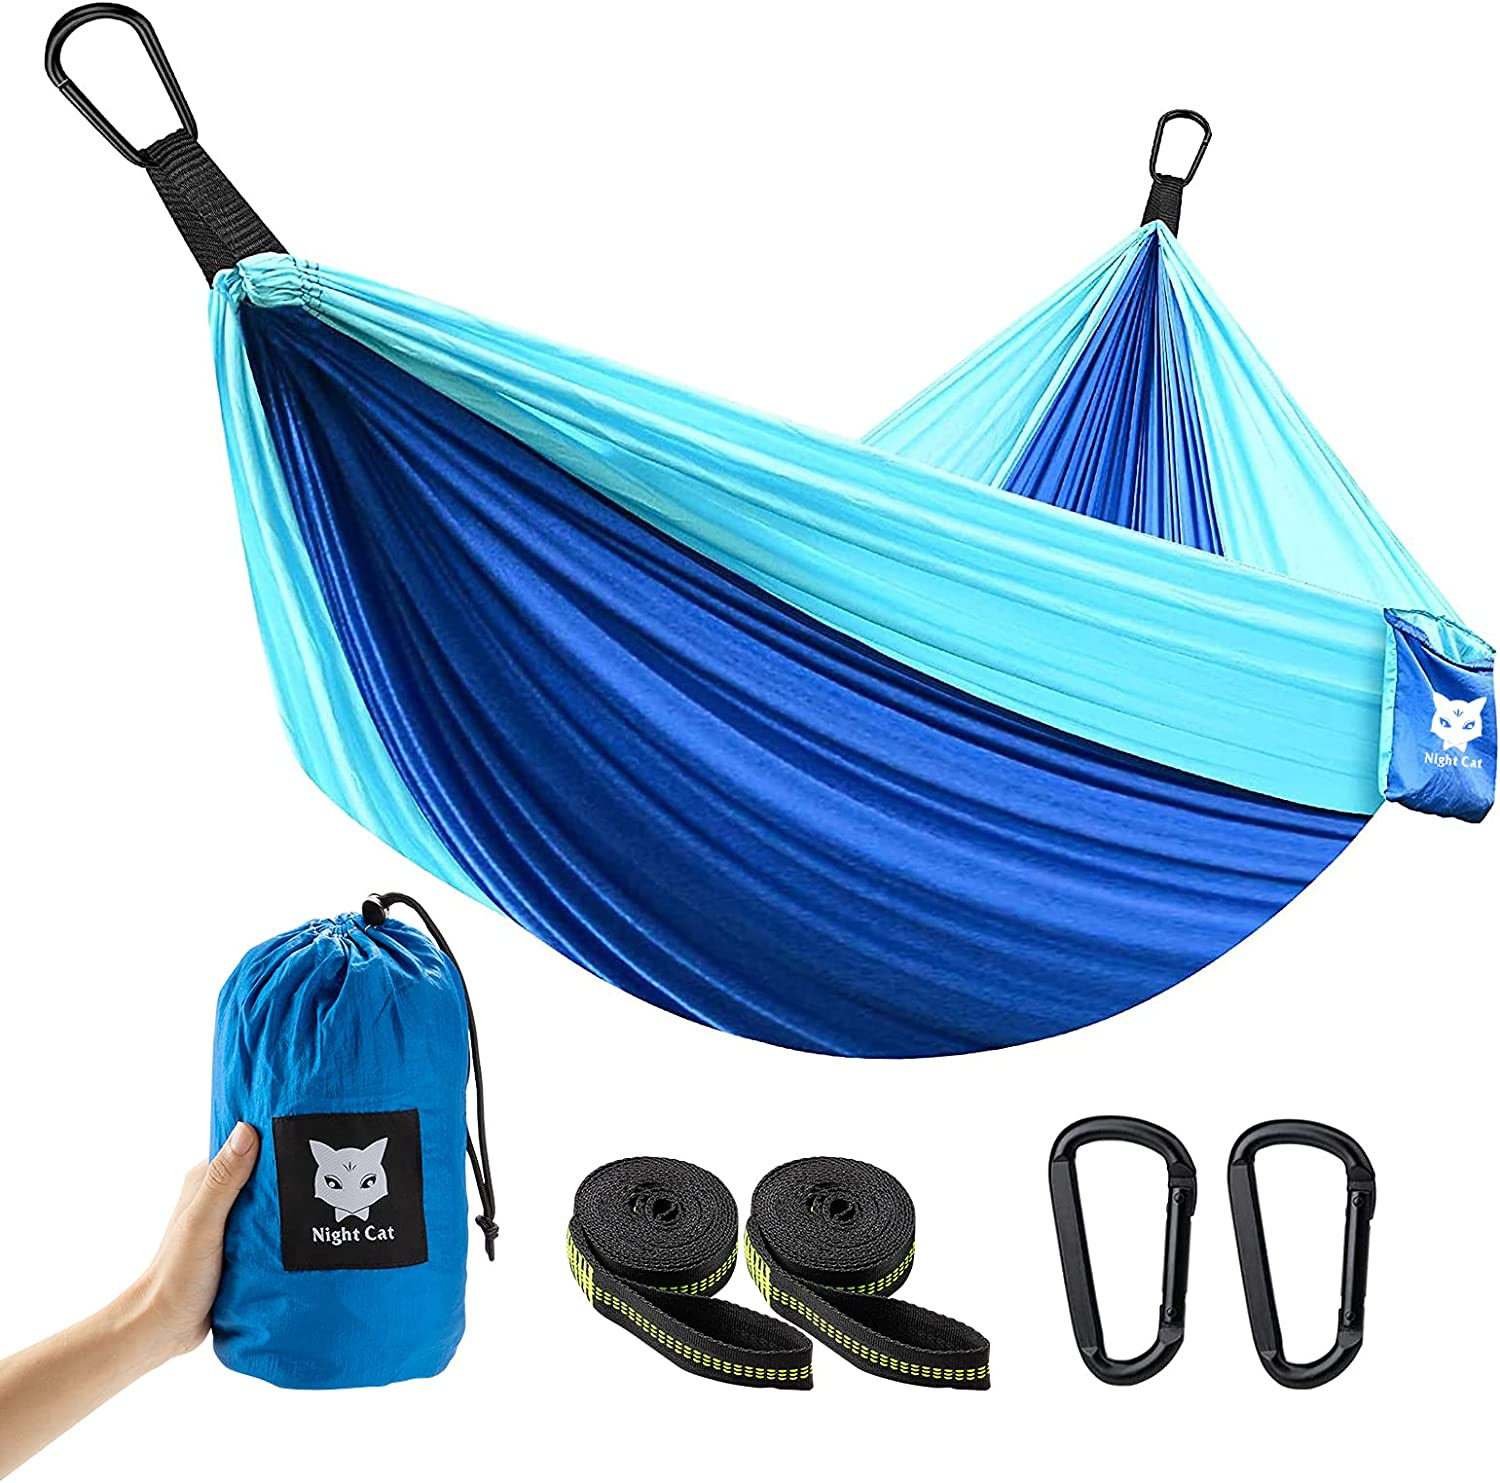 Night Cat Camping Hammock for 1 to or Persons Single New York Mall 2 Choice Po Double